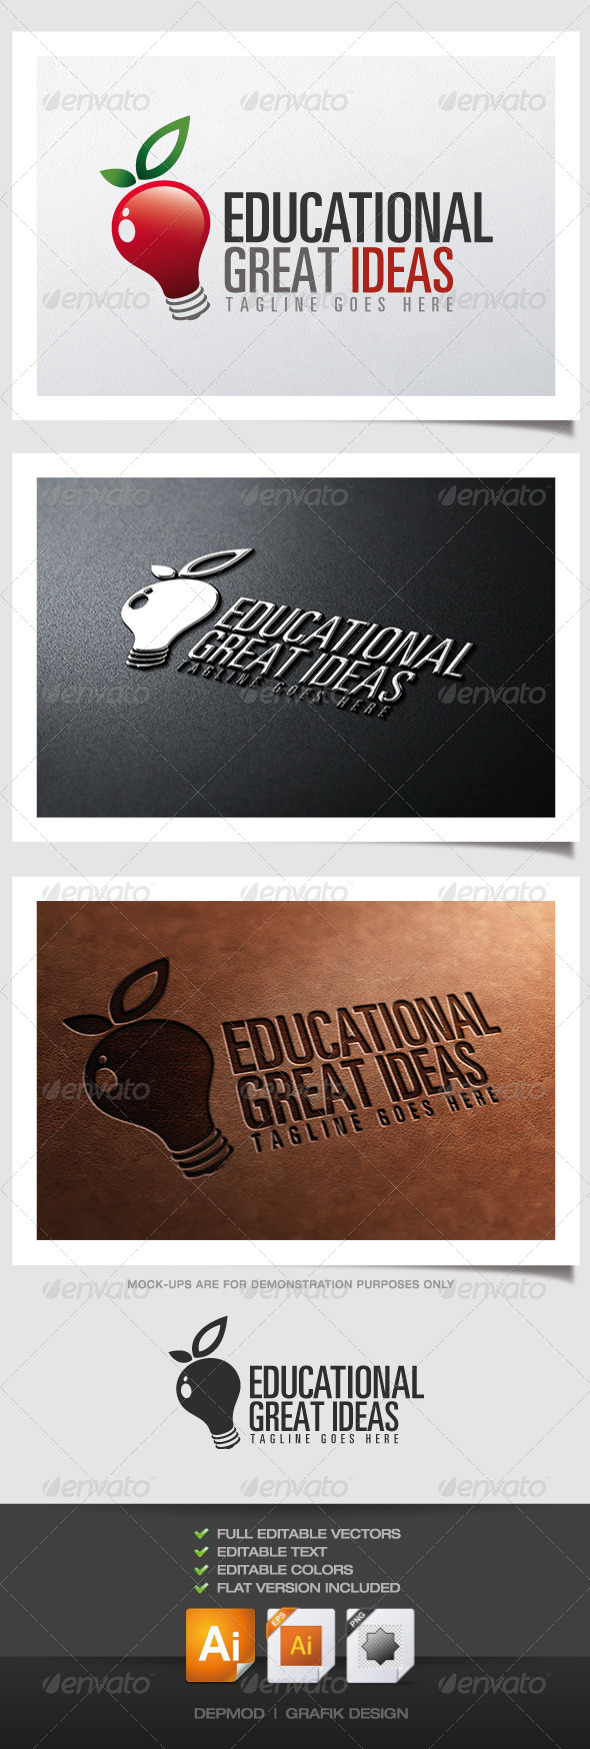 Educational Great Ideas Logo